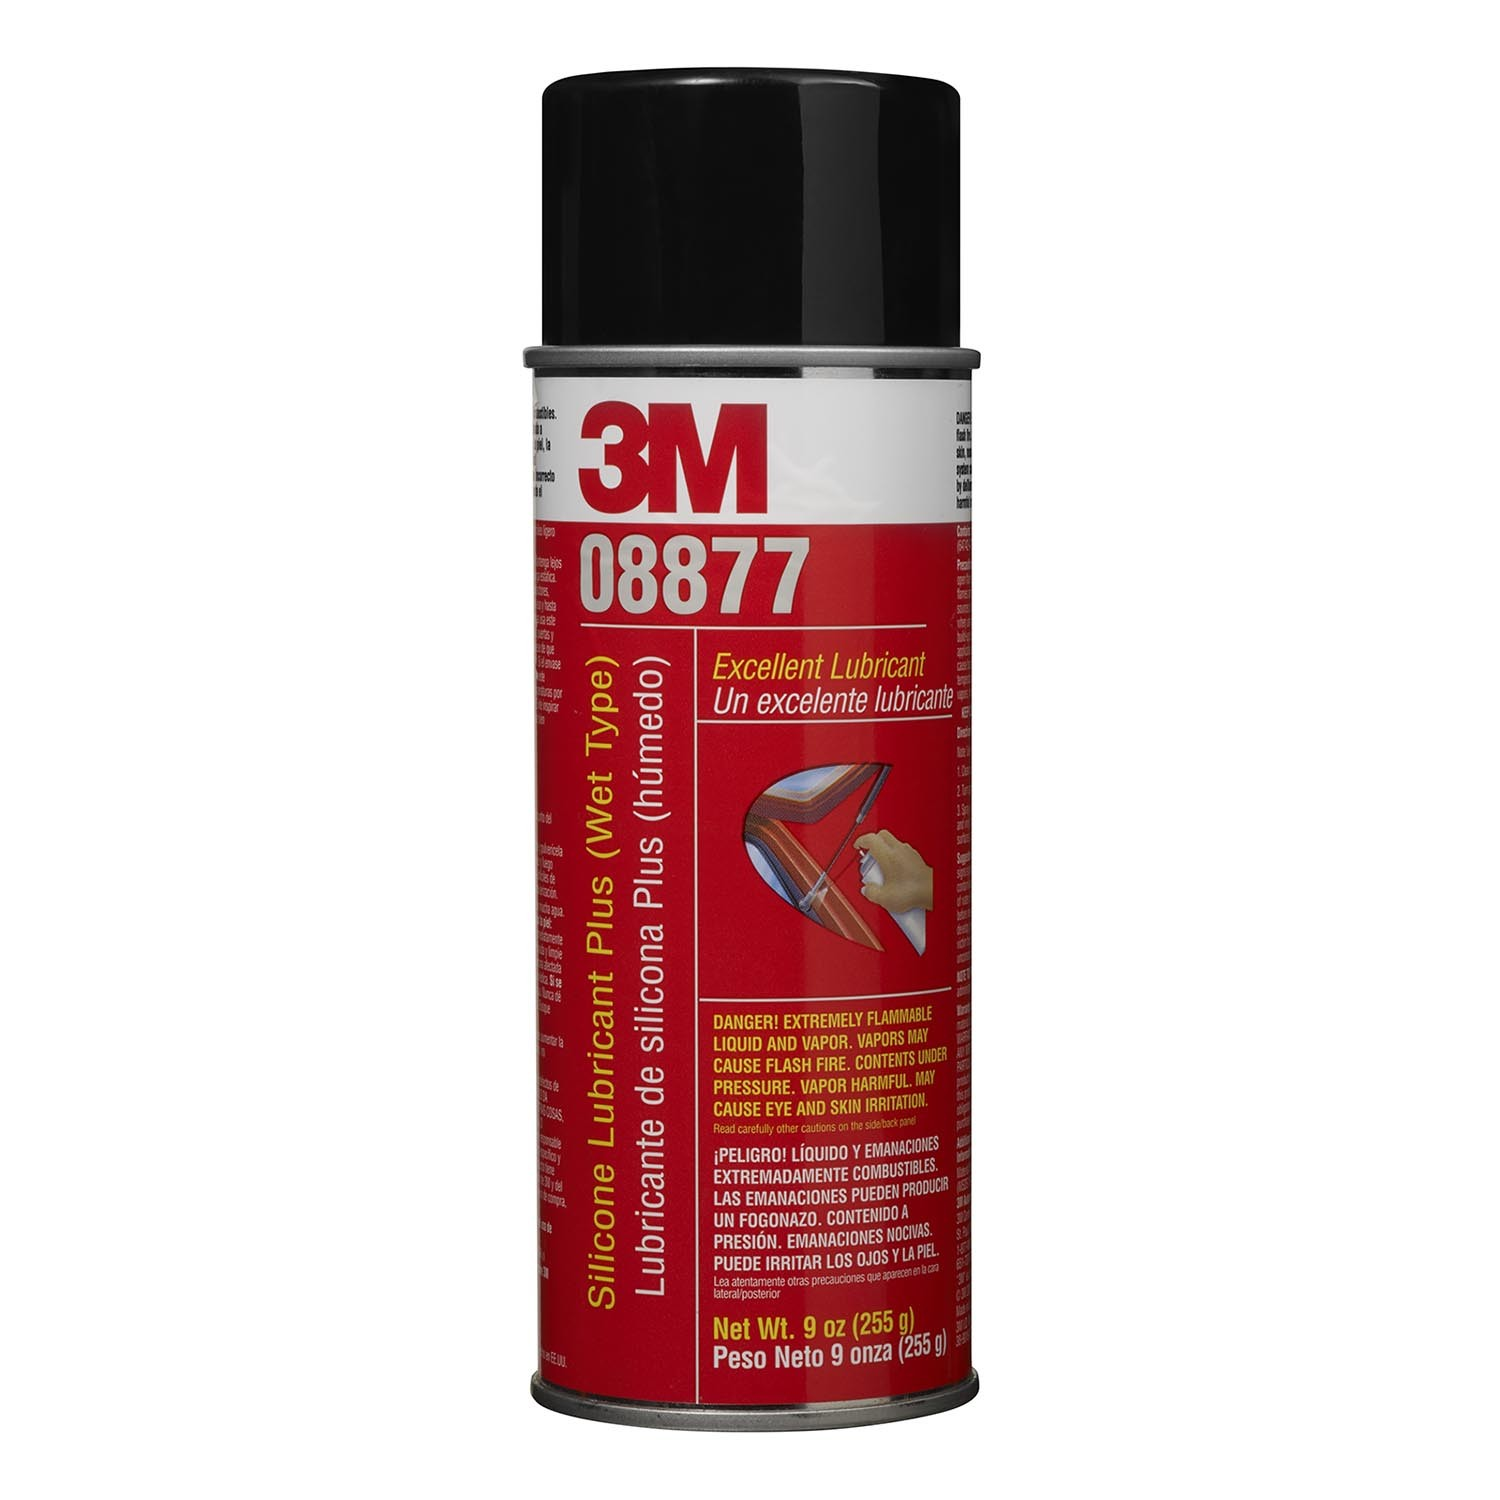 3m silicone lubricant plus wet type 08877 16 ounce - Lubricante silicona spray ...